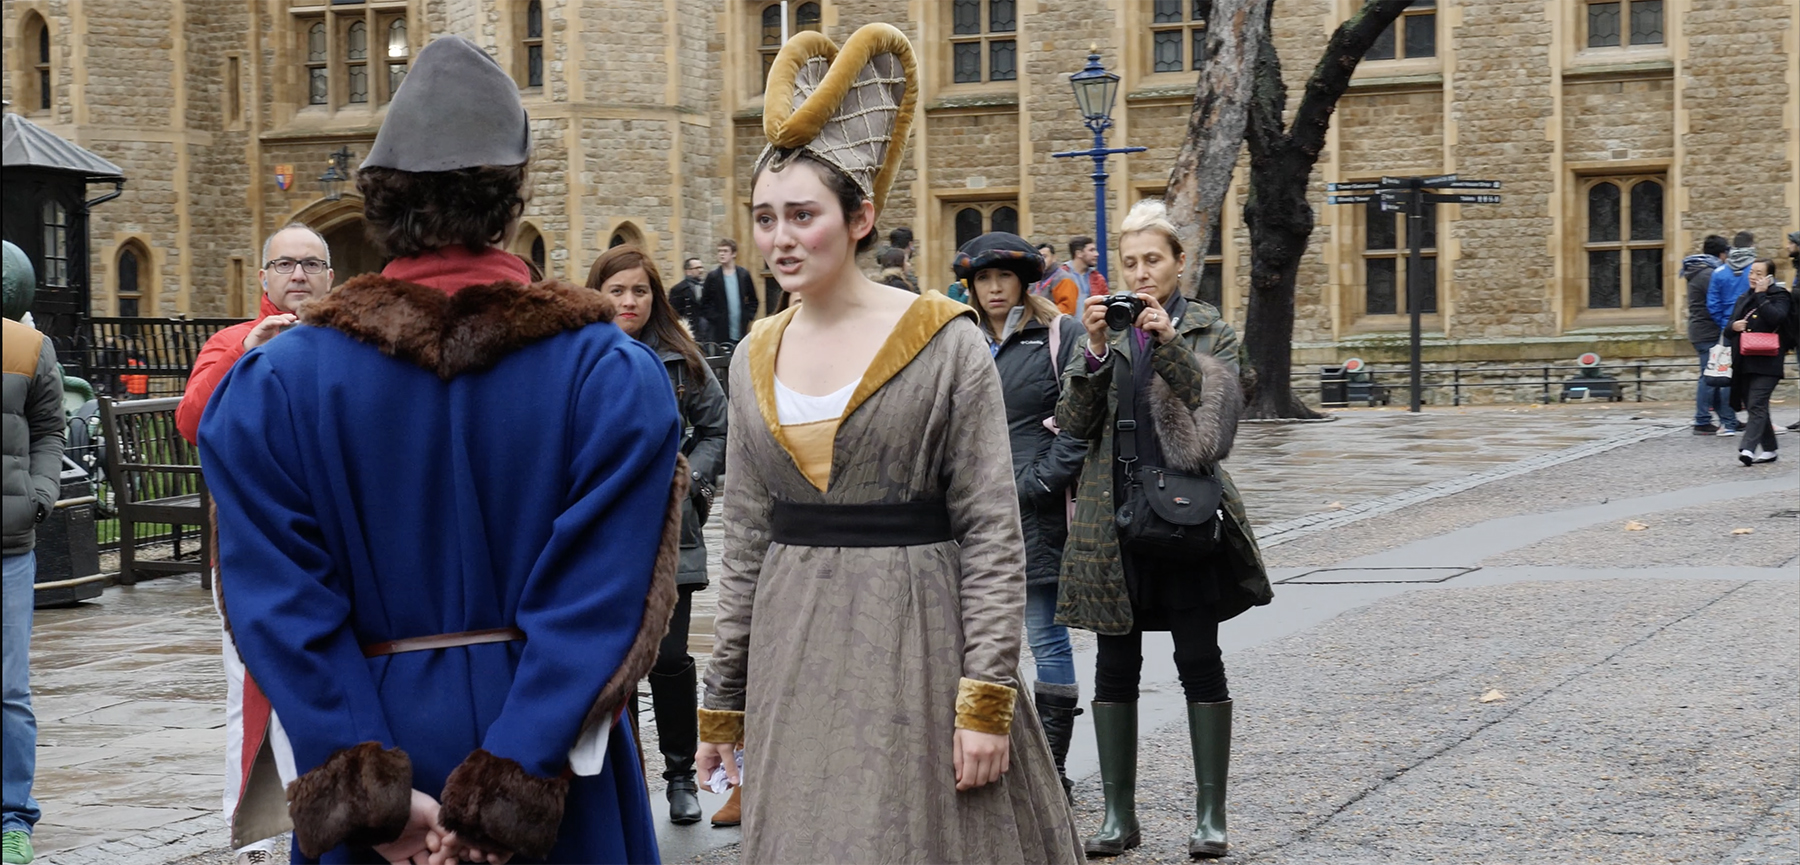 Drama Students Stage Tower of London 'Takeover'